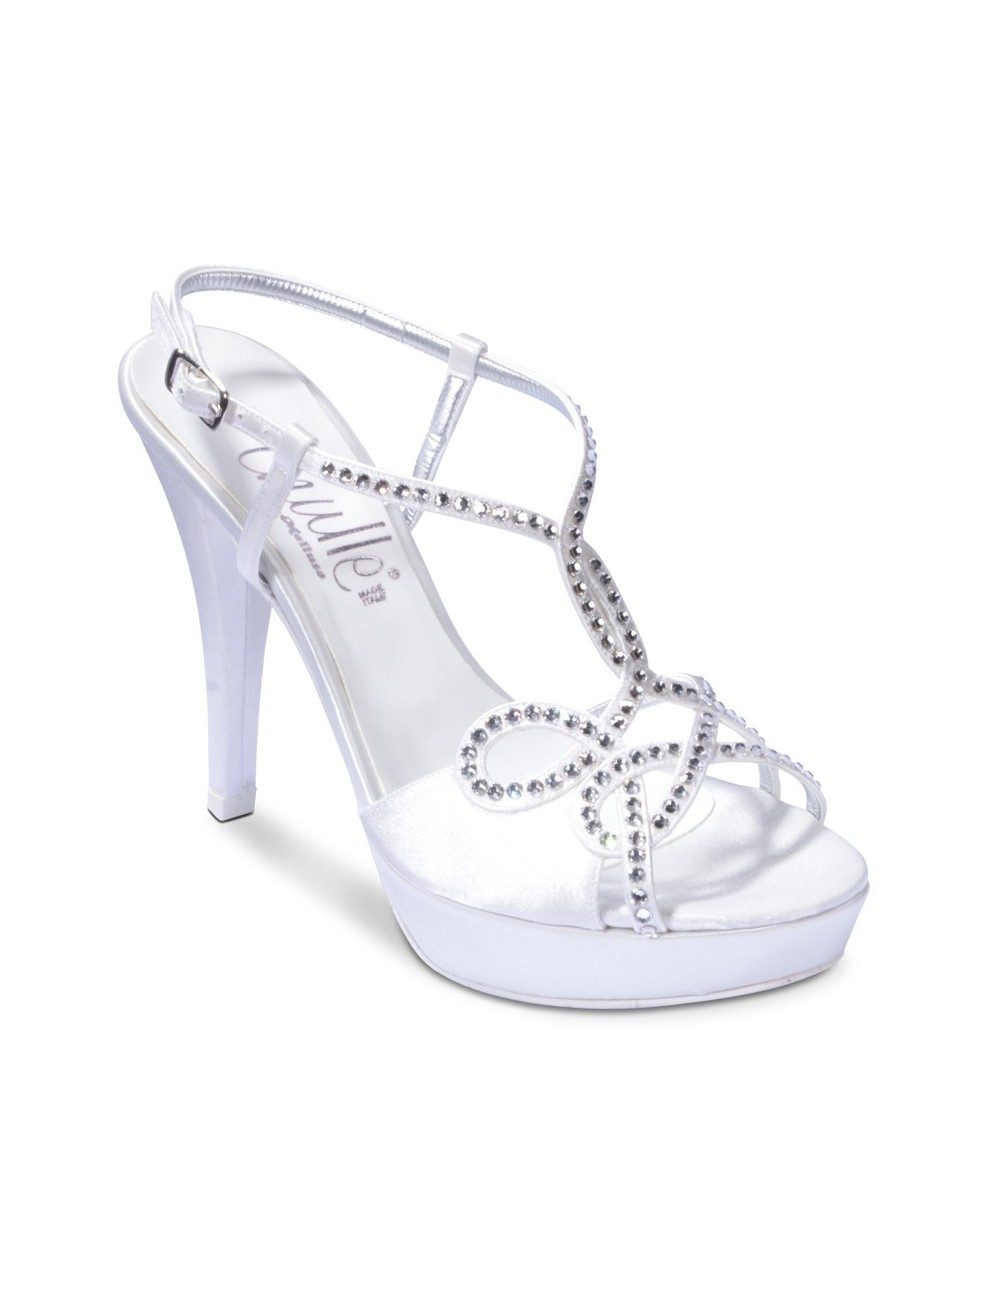 Scarpe Sposa Melluso.Th225 In Thulle By Melluso